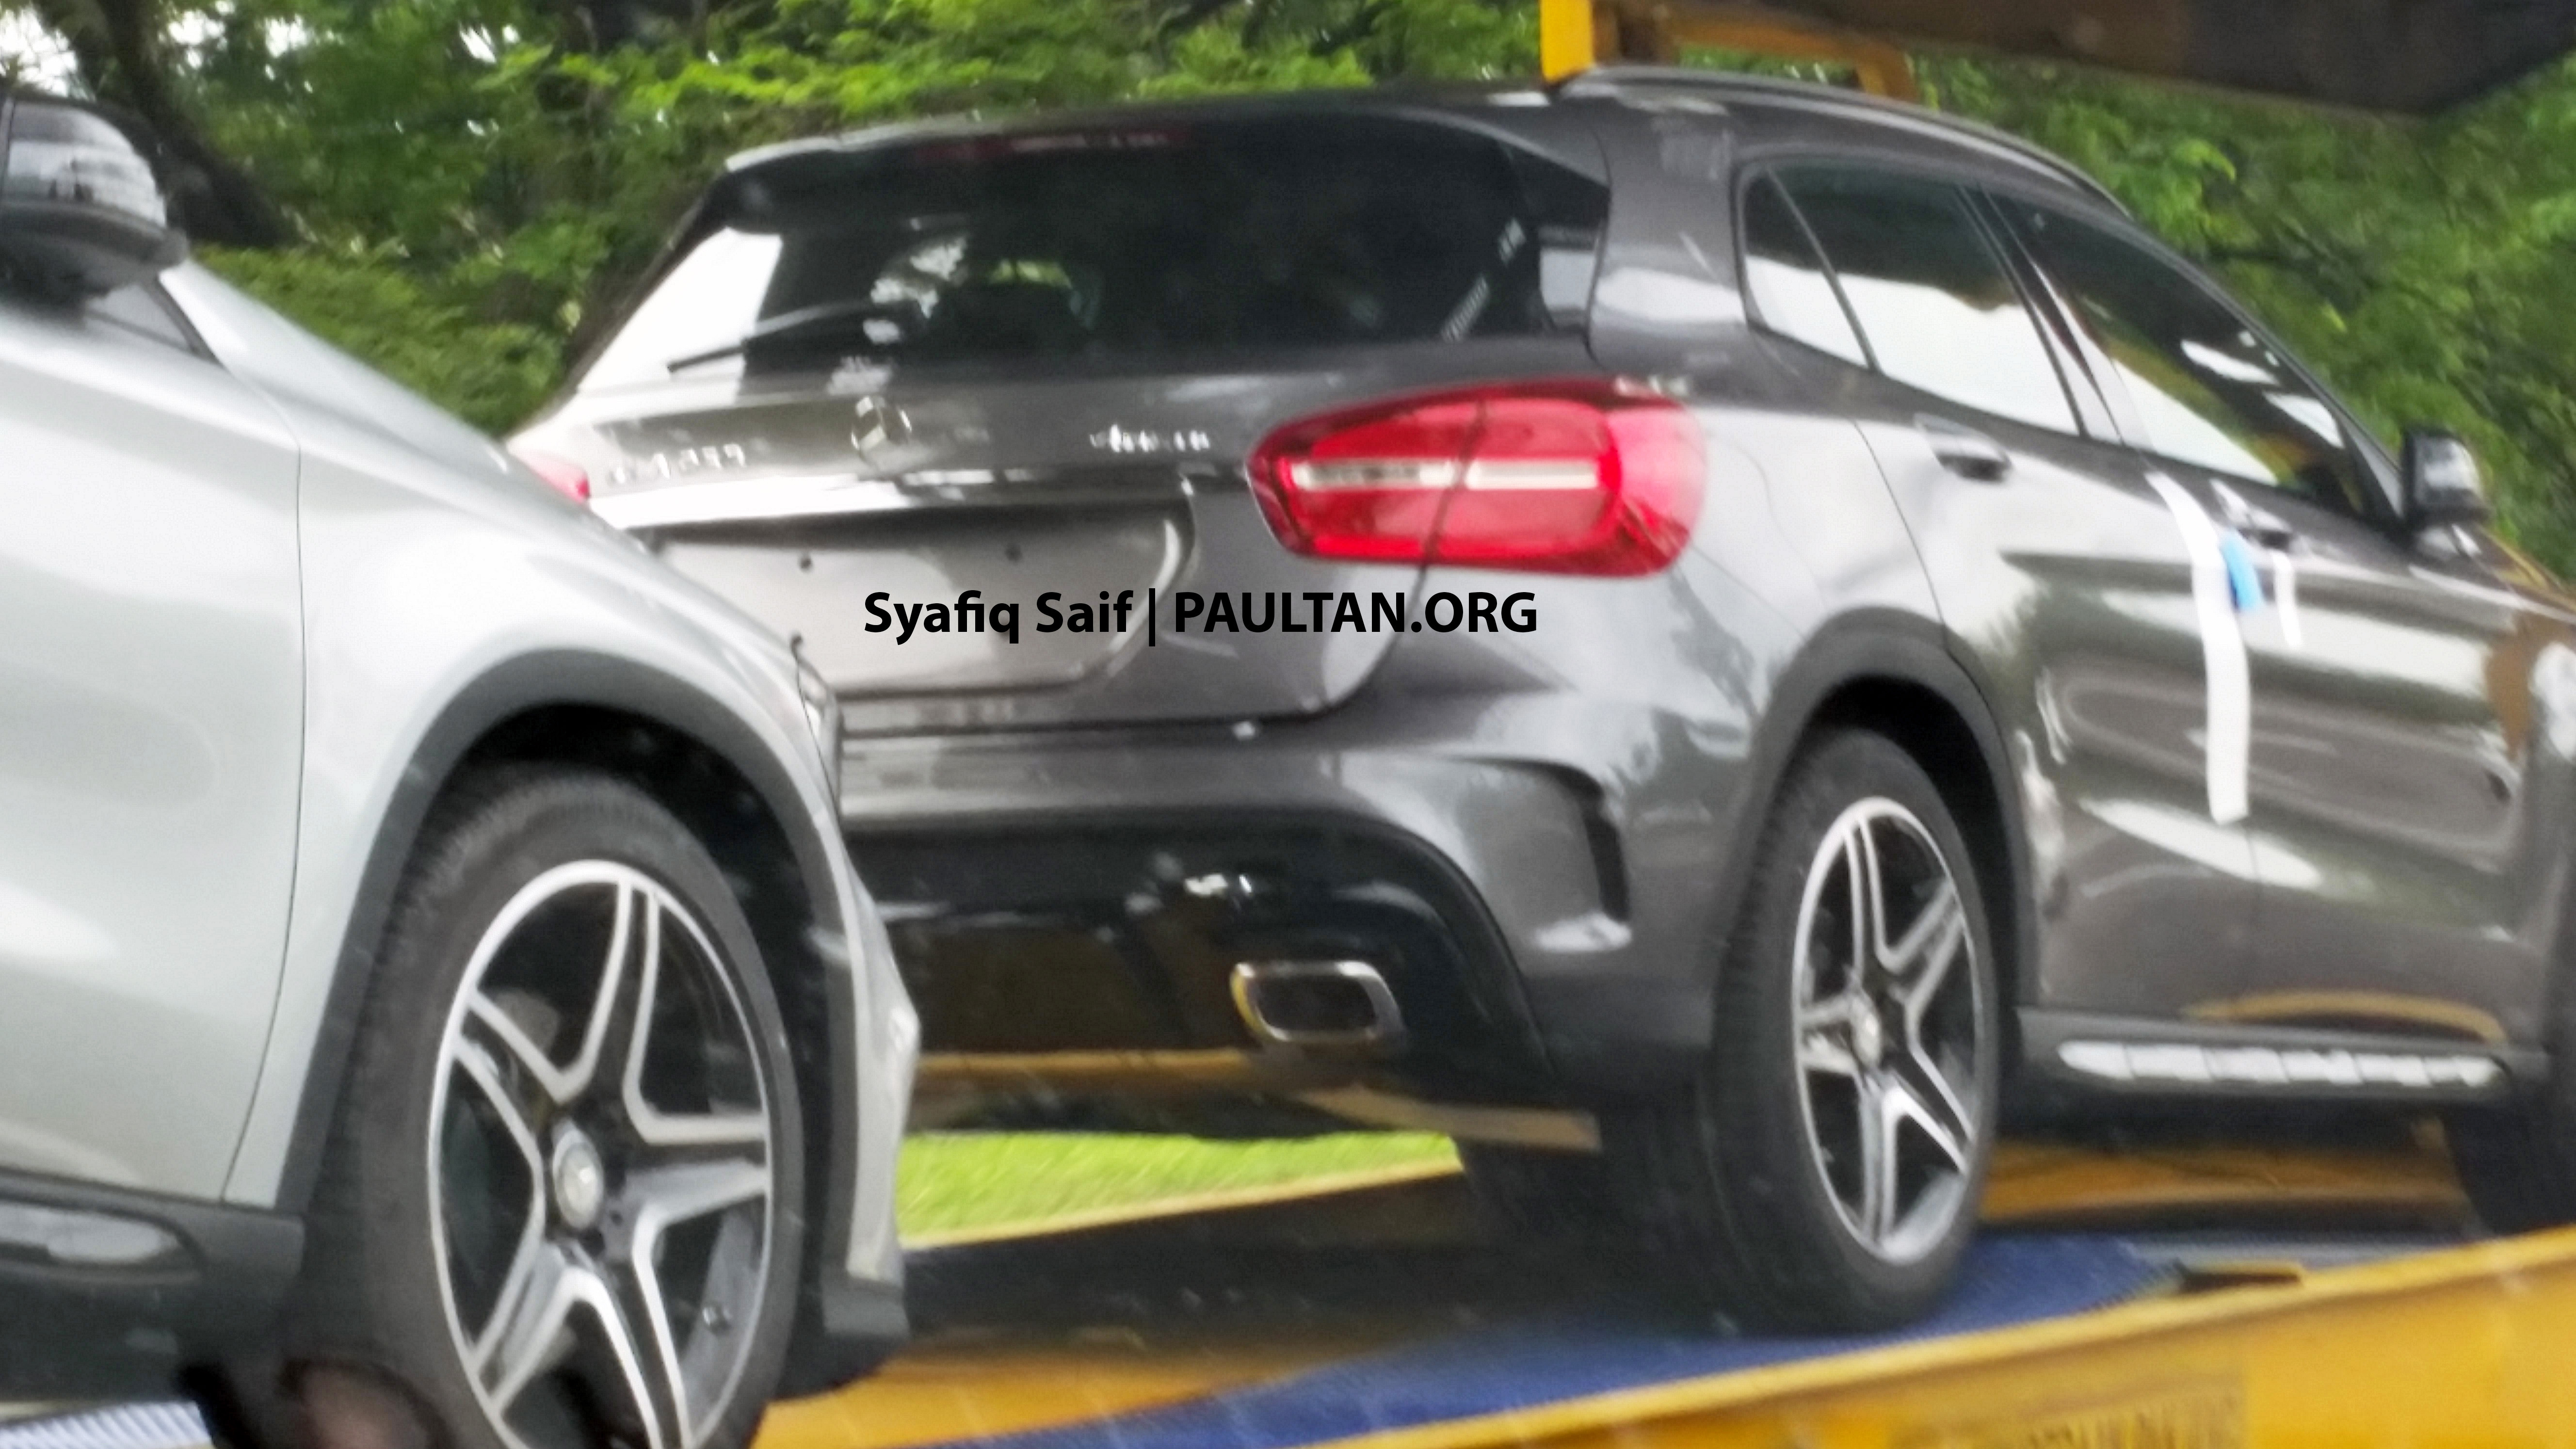 spied: mercedes-benz gla 250 amg sport 4matic image 266706